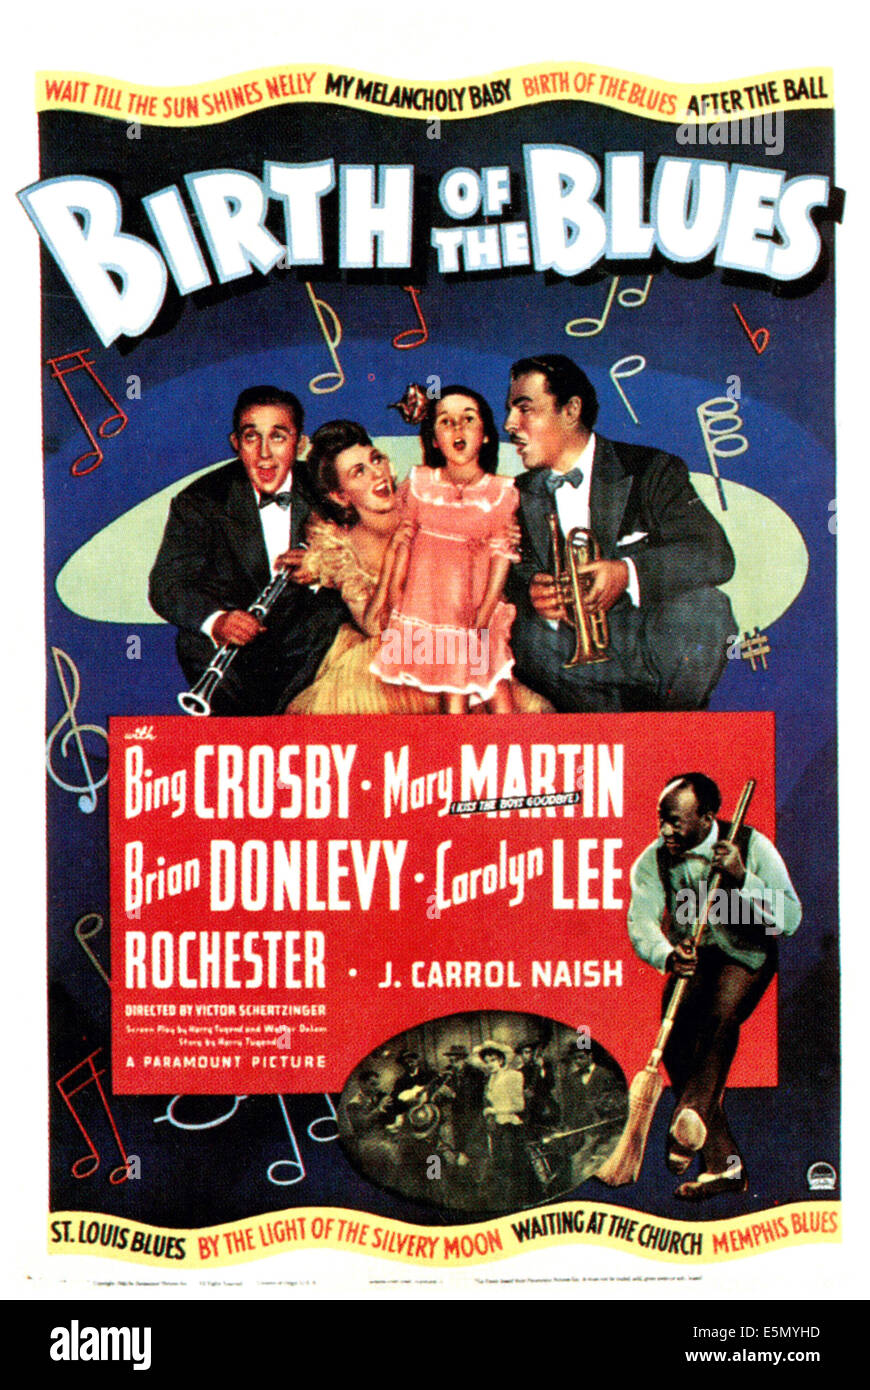 BIRTH OF THE BLUES, Bing Crosby, Mary Martin, Carolyn Lee, Brian Donlevy, Eddie Anderson,  1941 - Stock Image